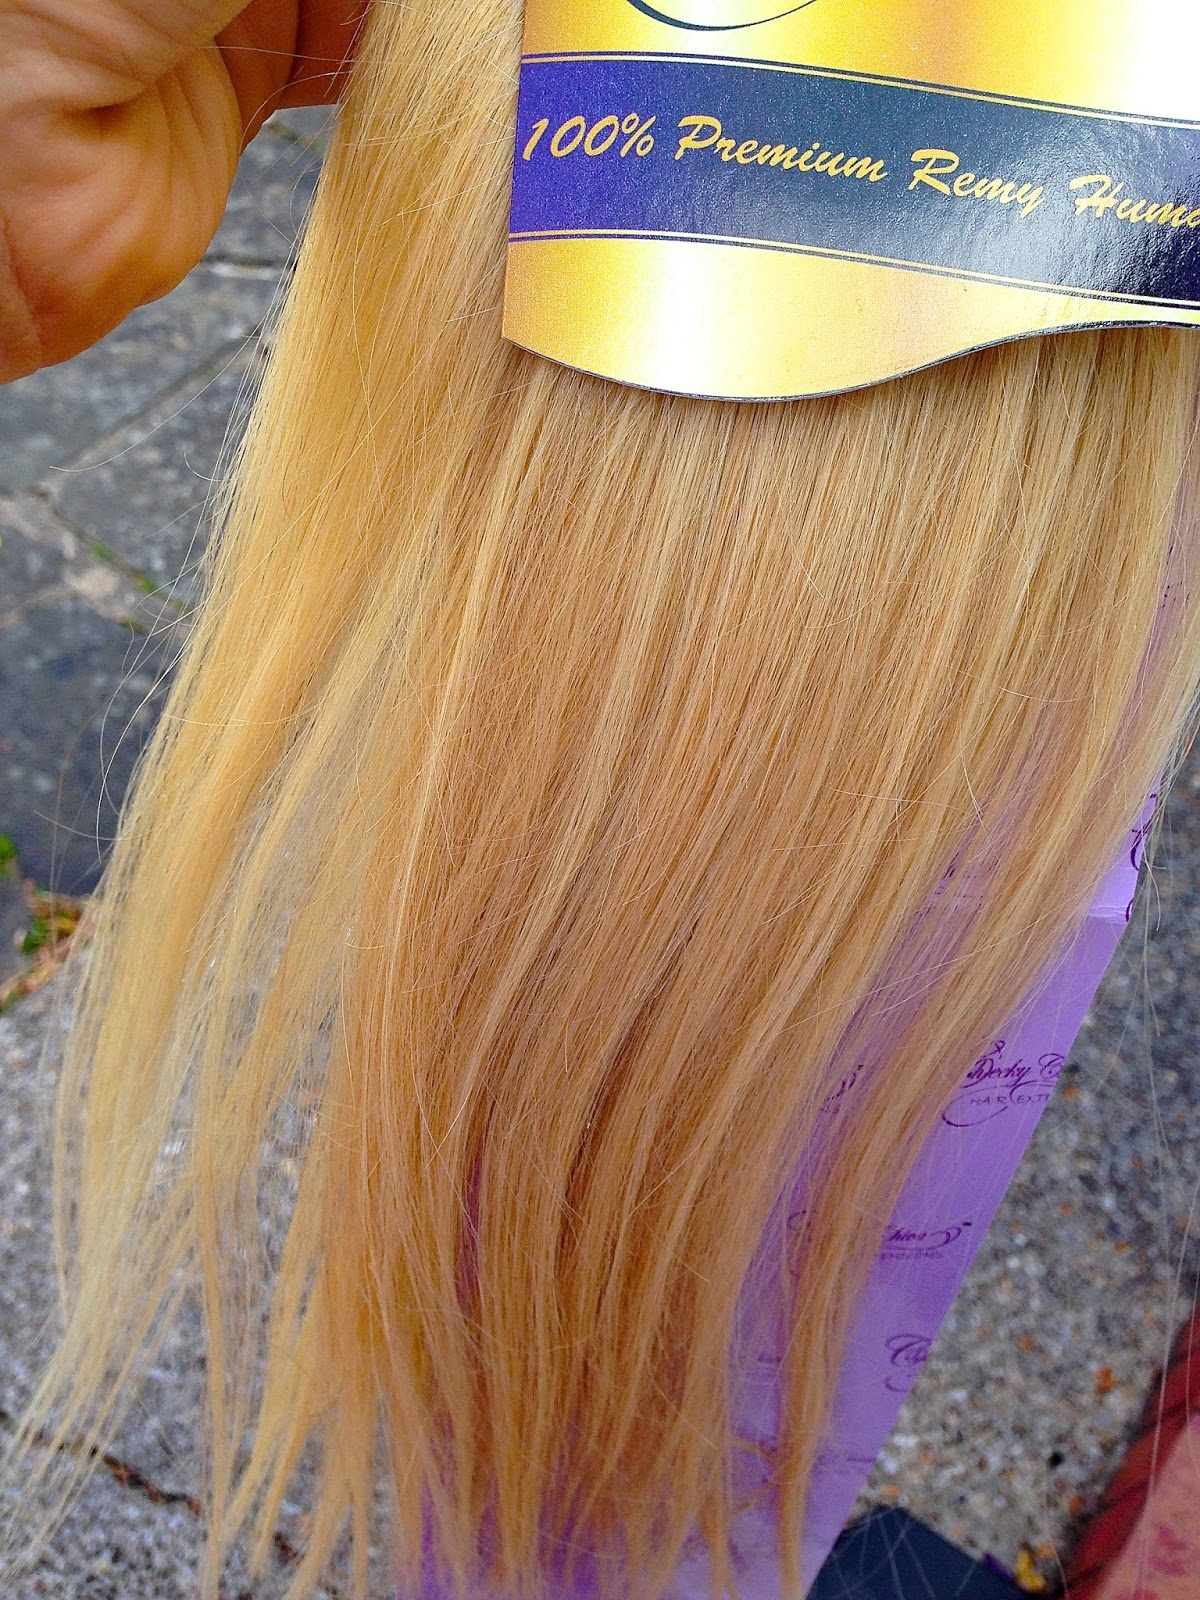 first came across this brand of hair extensions after reading a